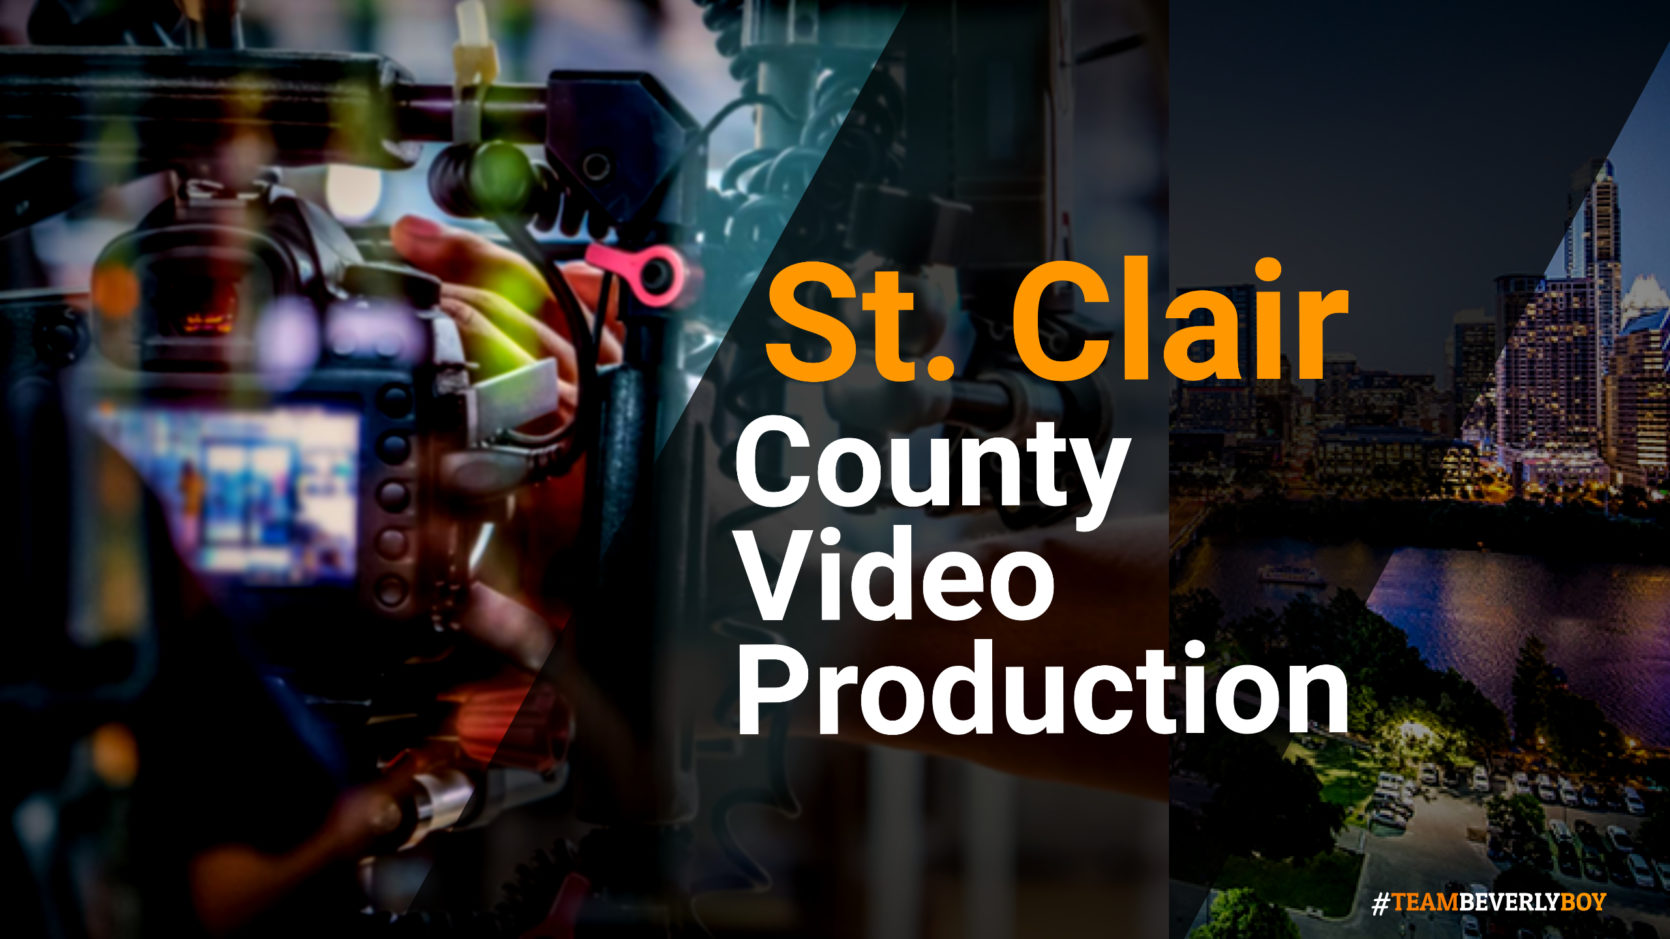 St. Clair County Video Production